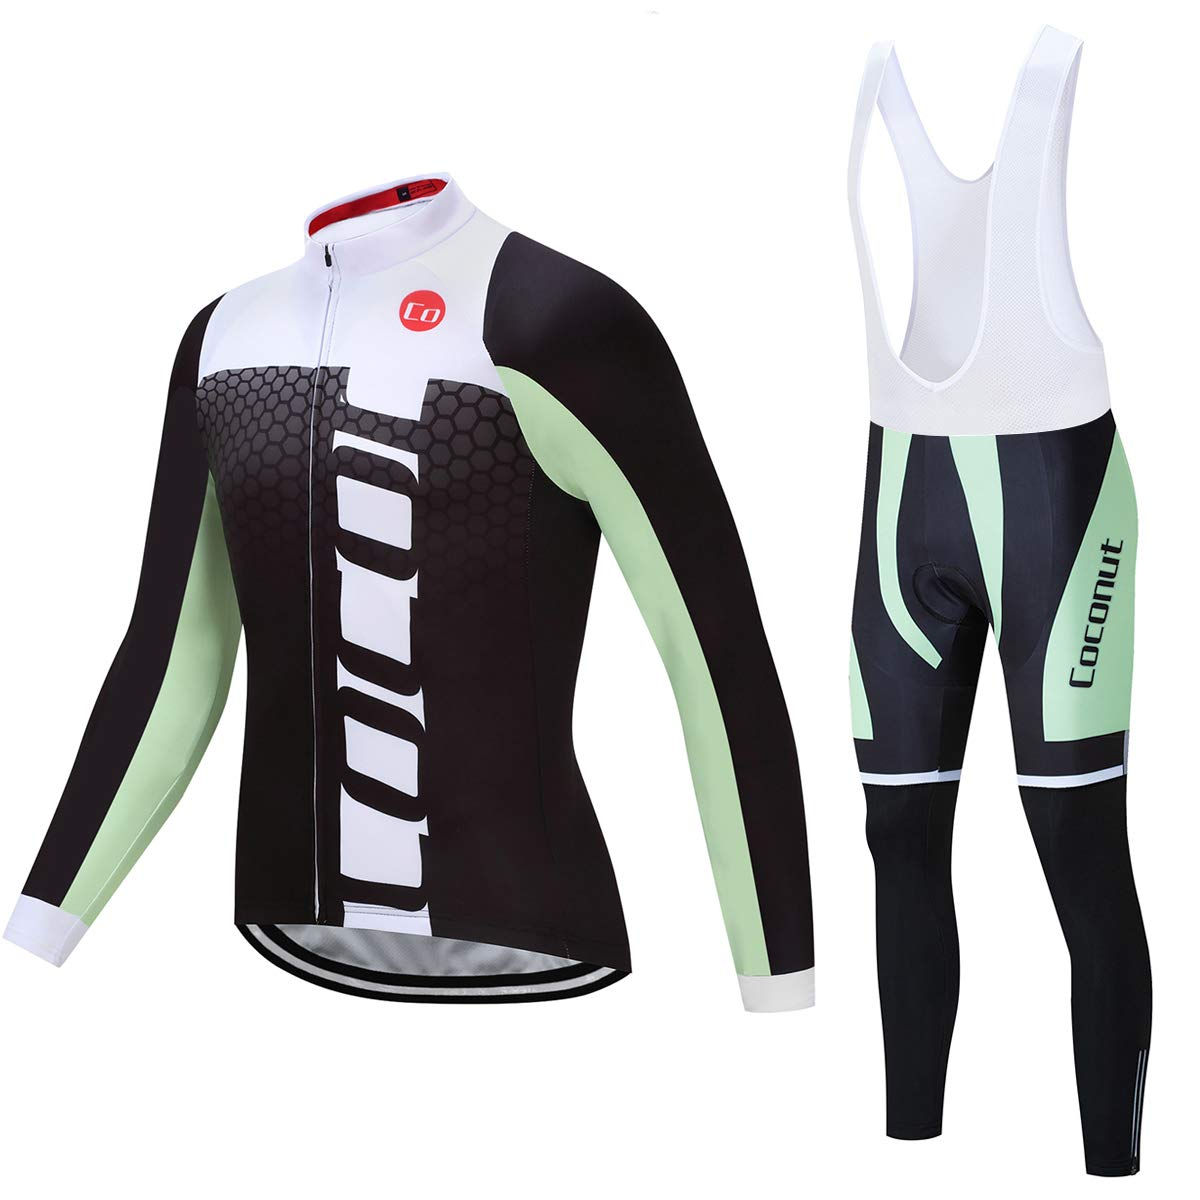 Coconut Ropamo Men's Cycling Jersey Suit Long Sleeve Road Bike Jersey Cycling Sets Tights with Padded (Green/White, Chest 40-42'' Waist 32-34''- Large) by Coconut Ropamo